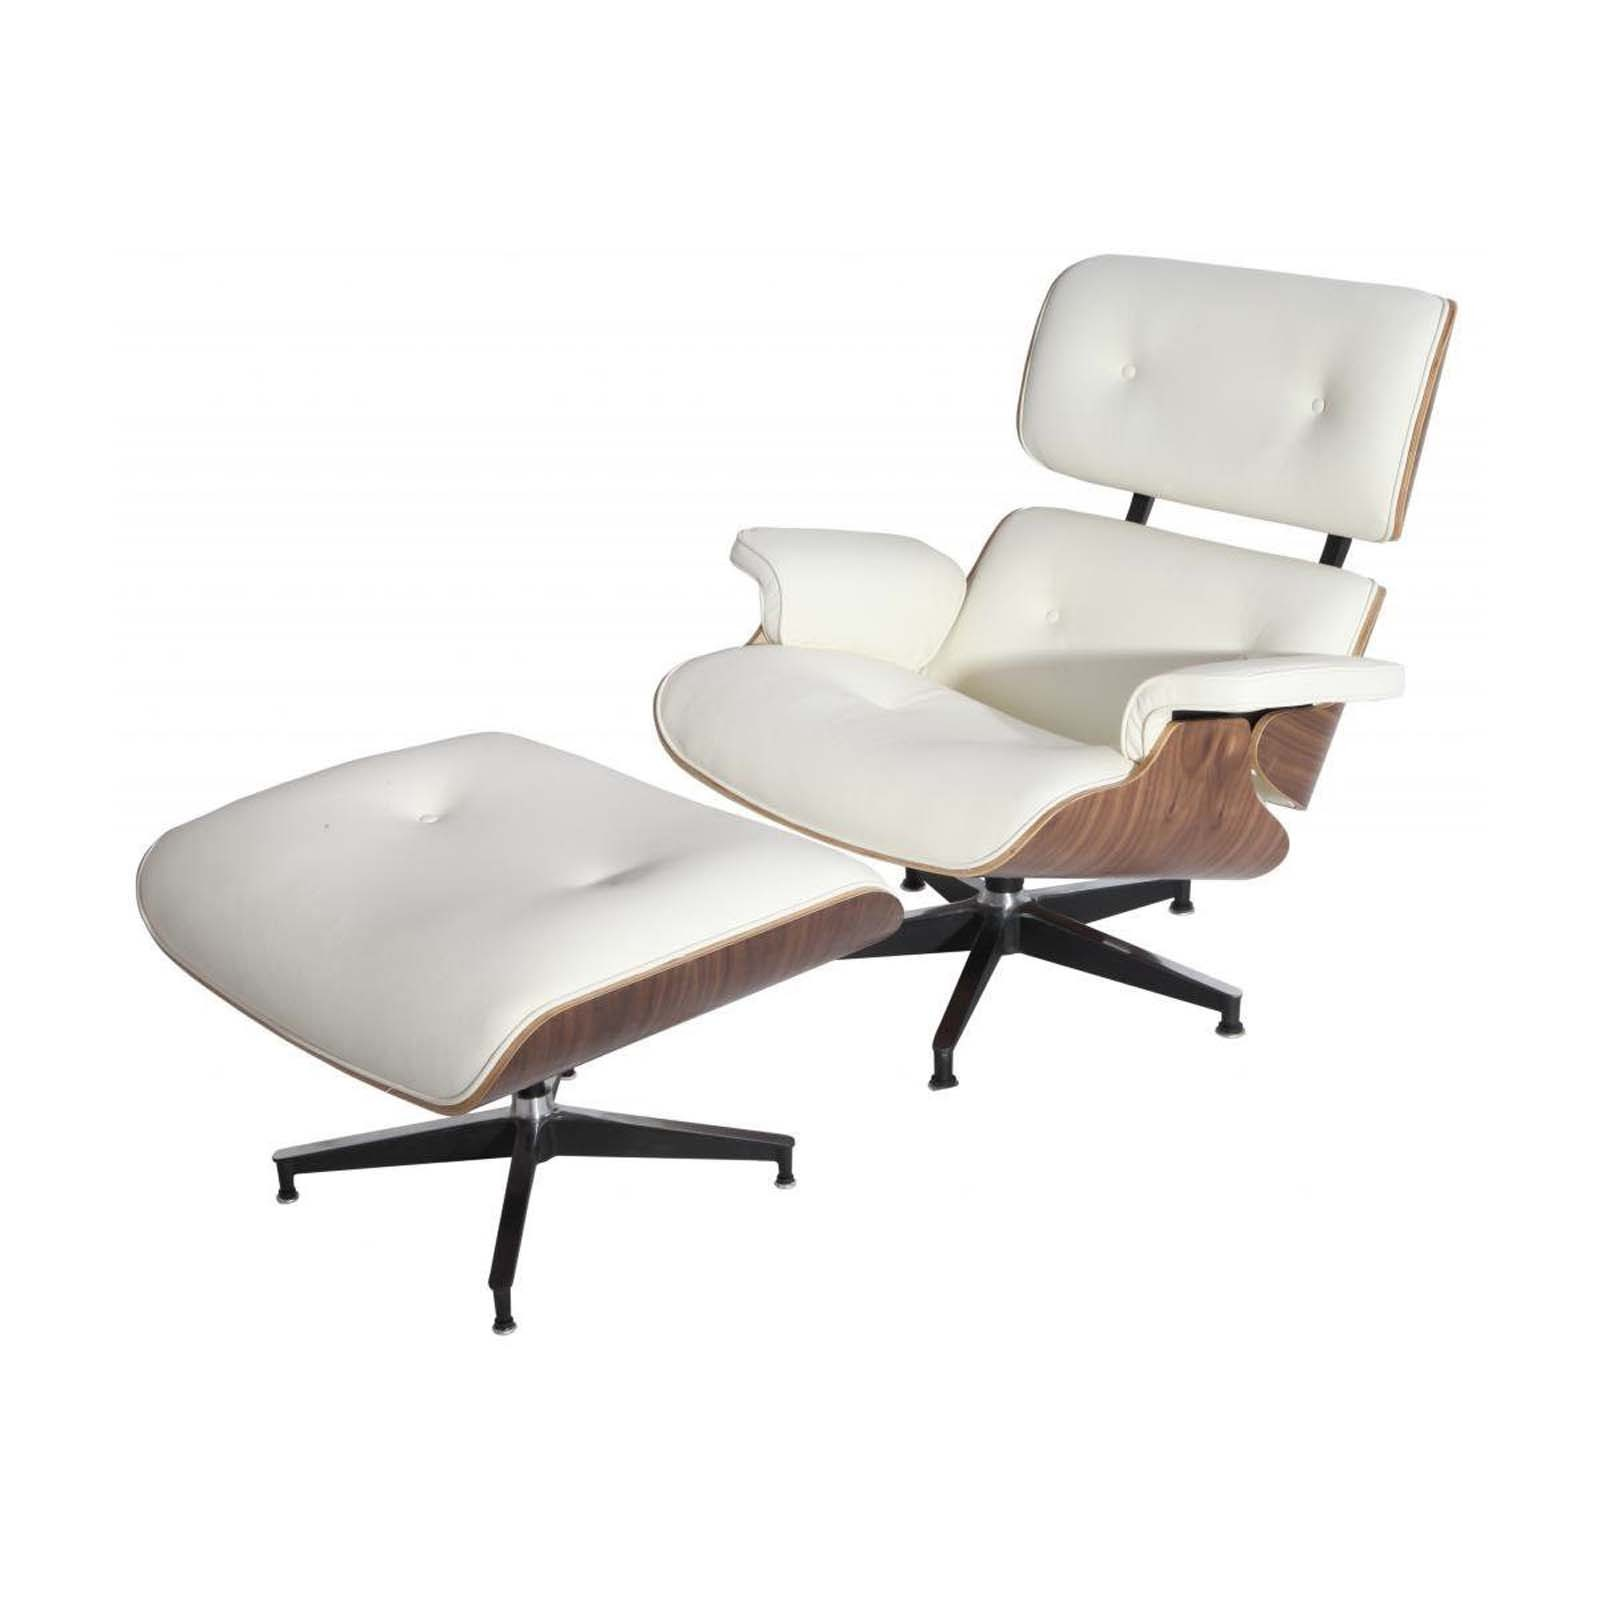 Eames Chair Replica Lounge Chair & Ottoman